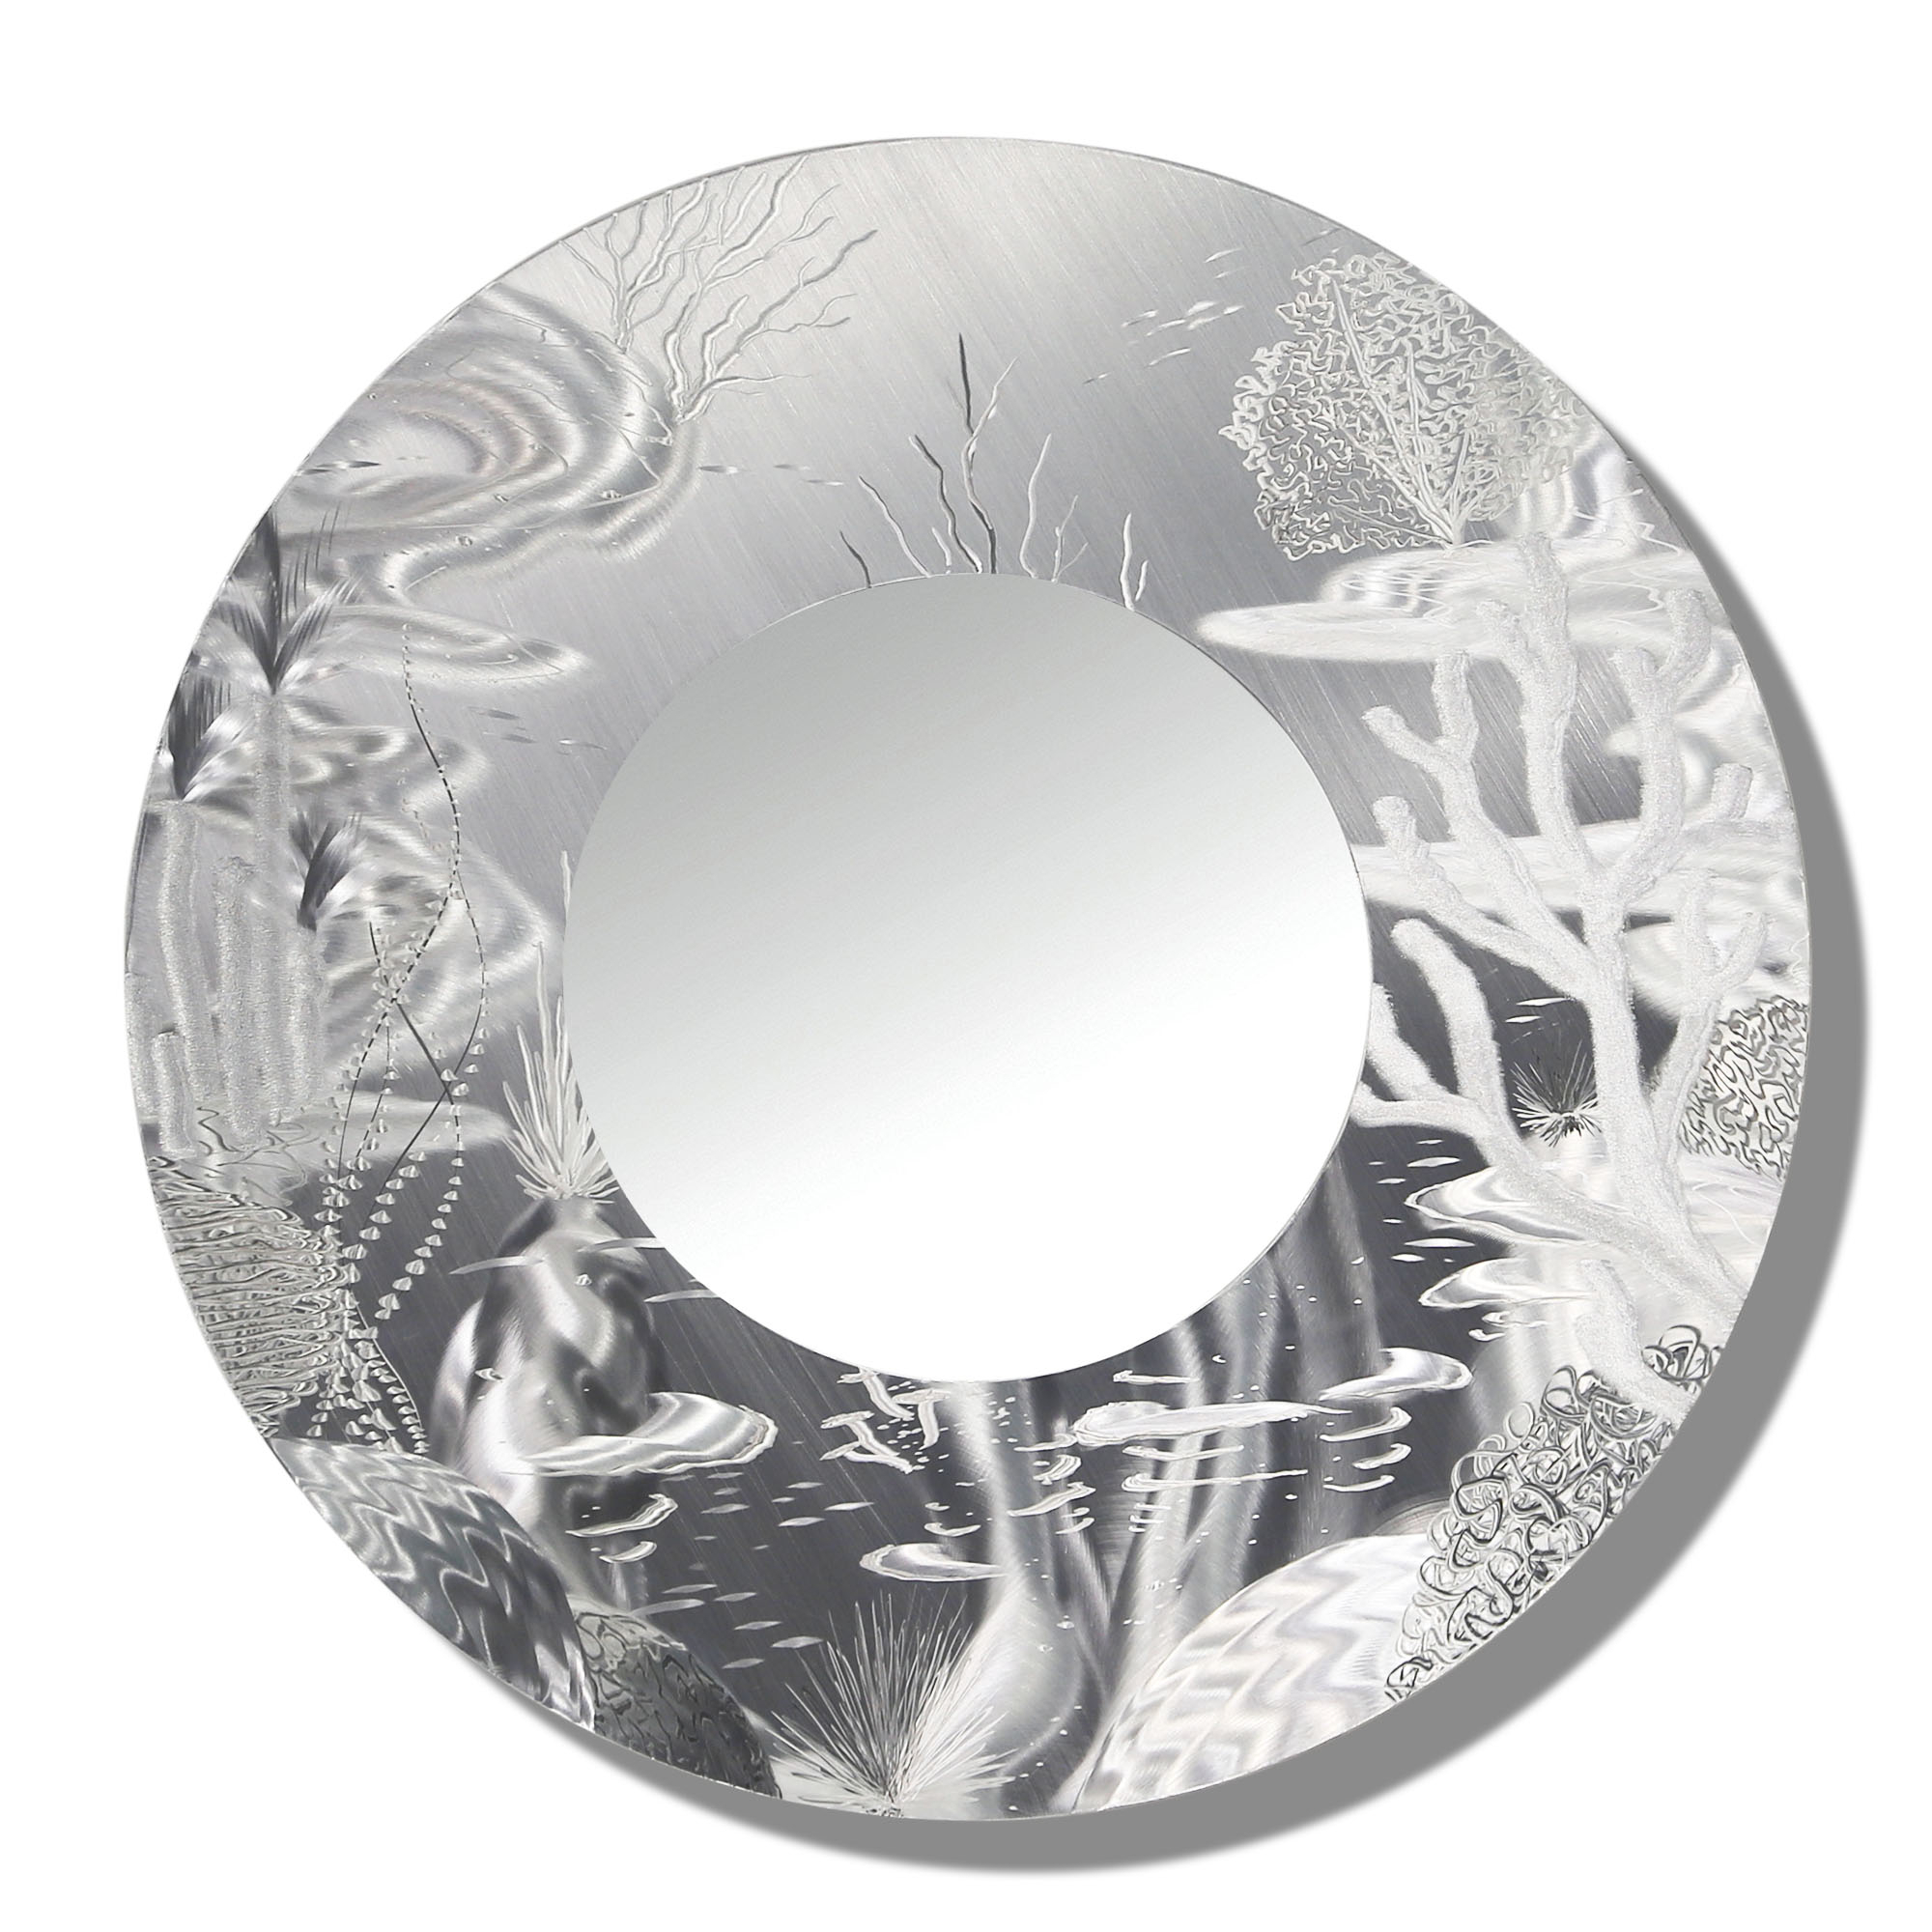 Most Recent Mirror 102 – All Natural Silver Abstract Marine Life Circle Wall Mirror –  Modern Metal Wall Accent Art Throughout Round Silver Wall Mirrors (View 7 of 20)